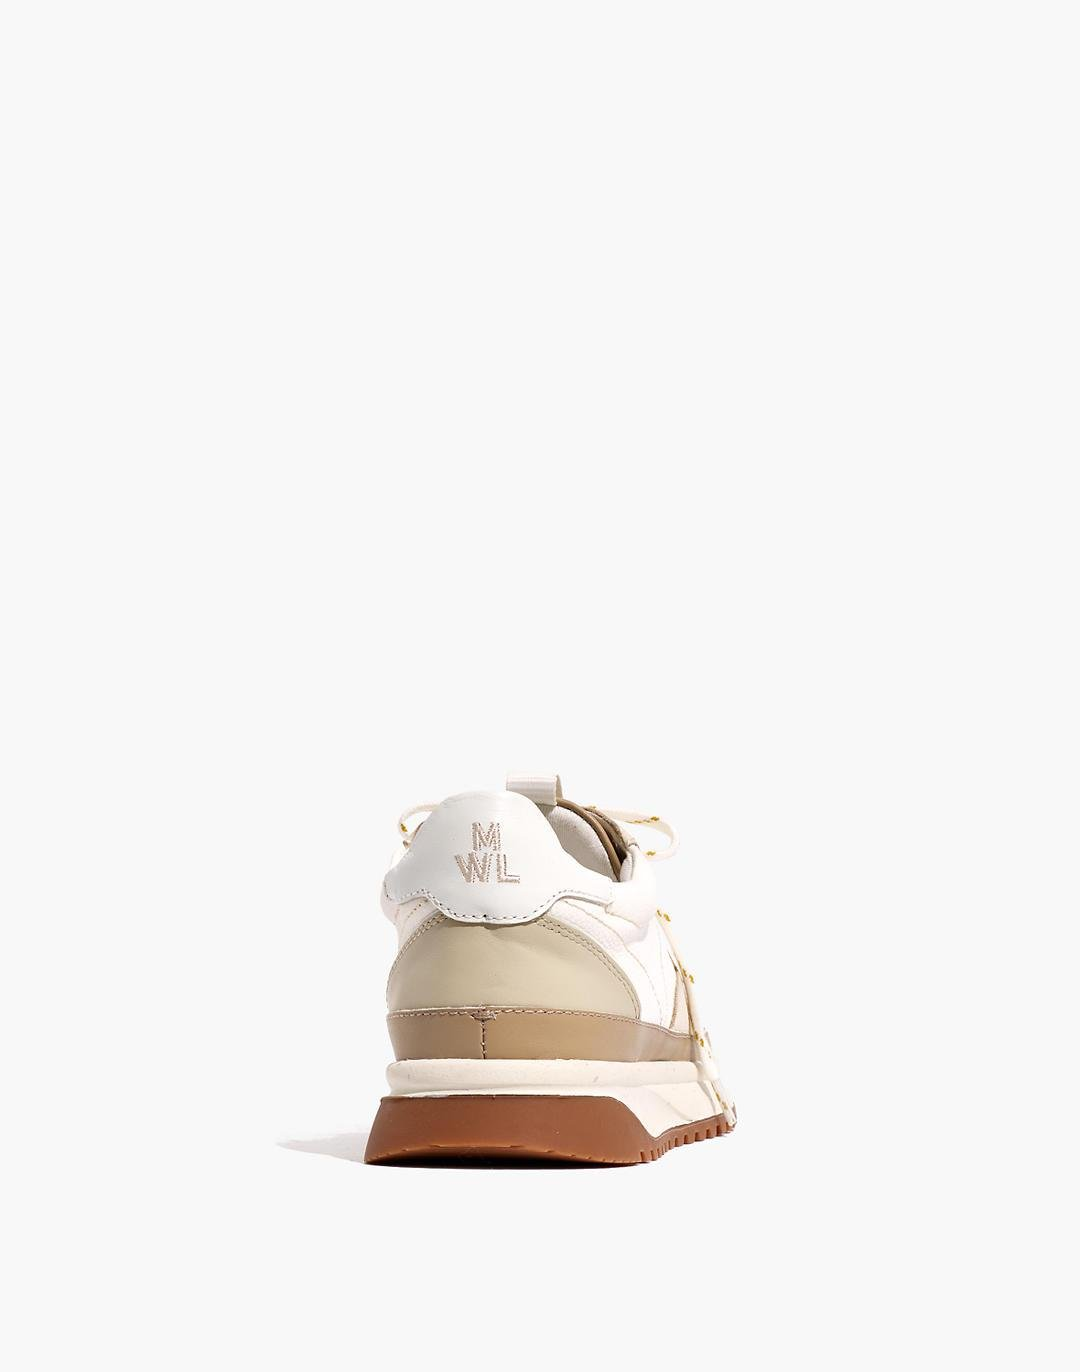 Kickoff Trainer Sneakers in Neutral Colorblock Leather 2